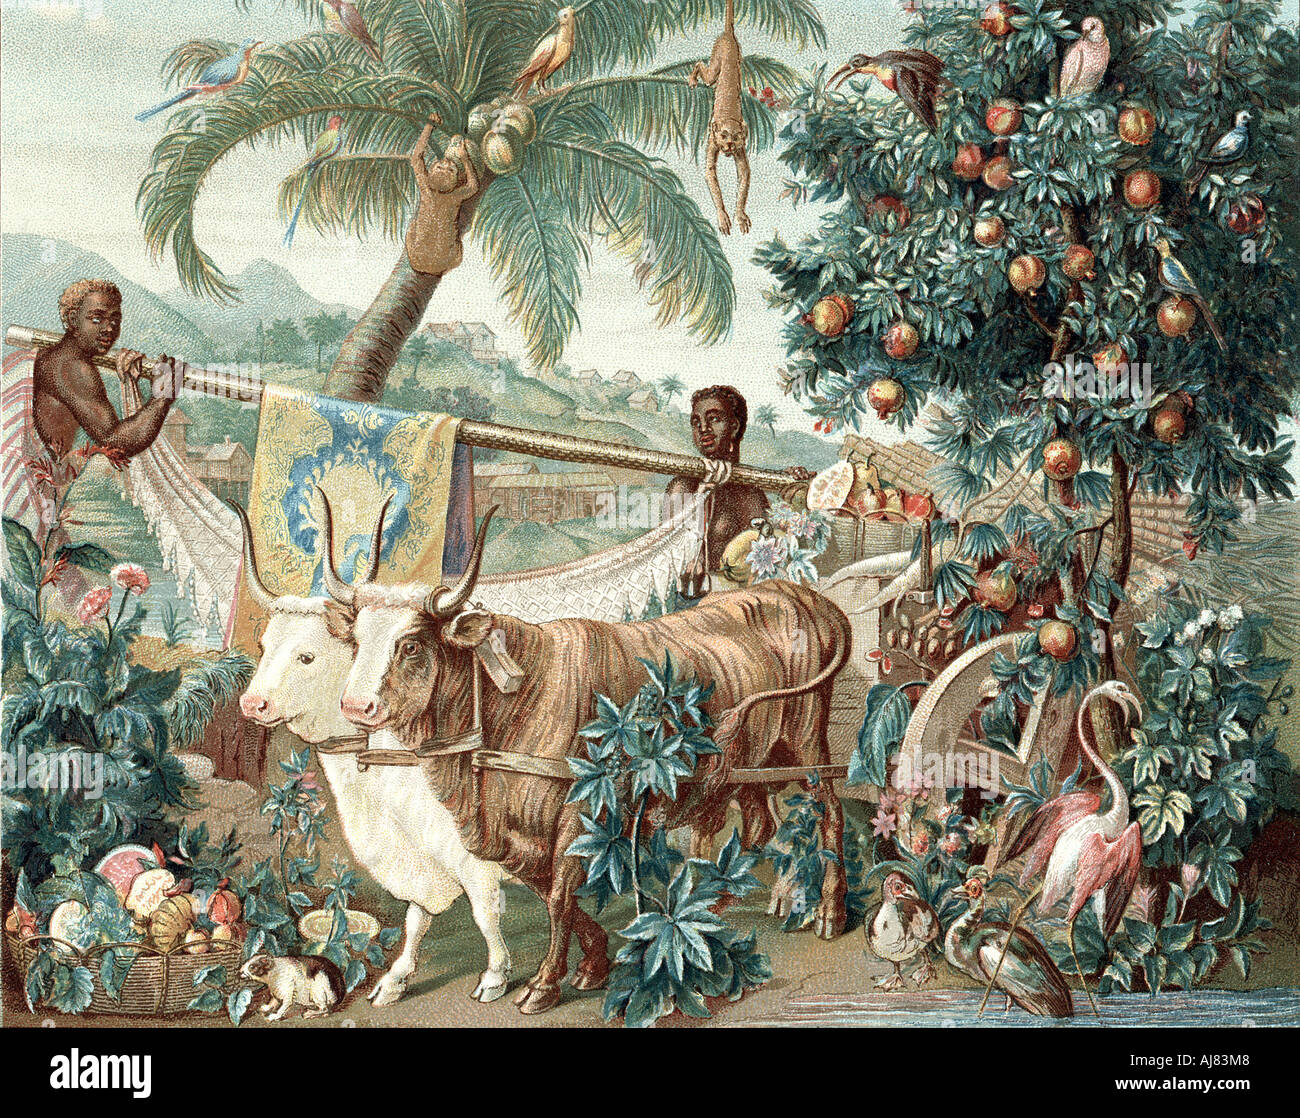 Wealth of the Indies 17th century  - Stock Image